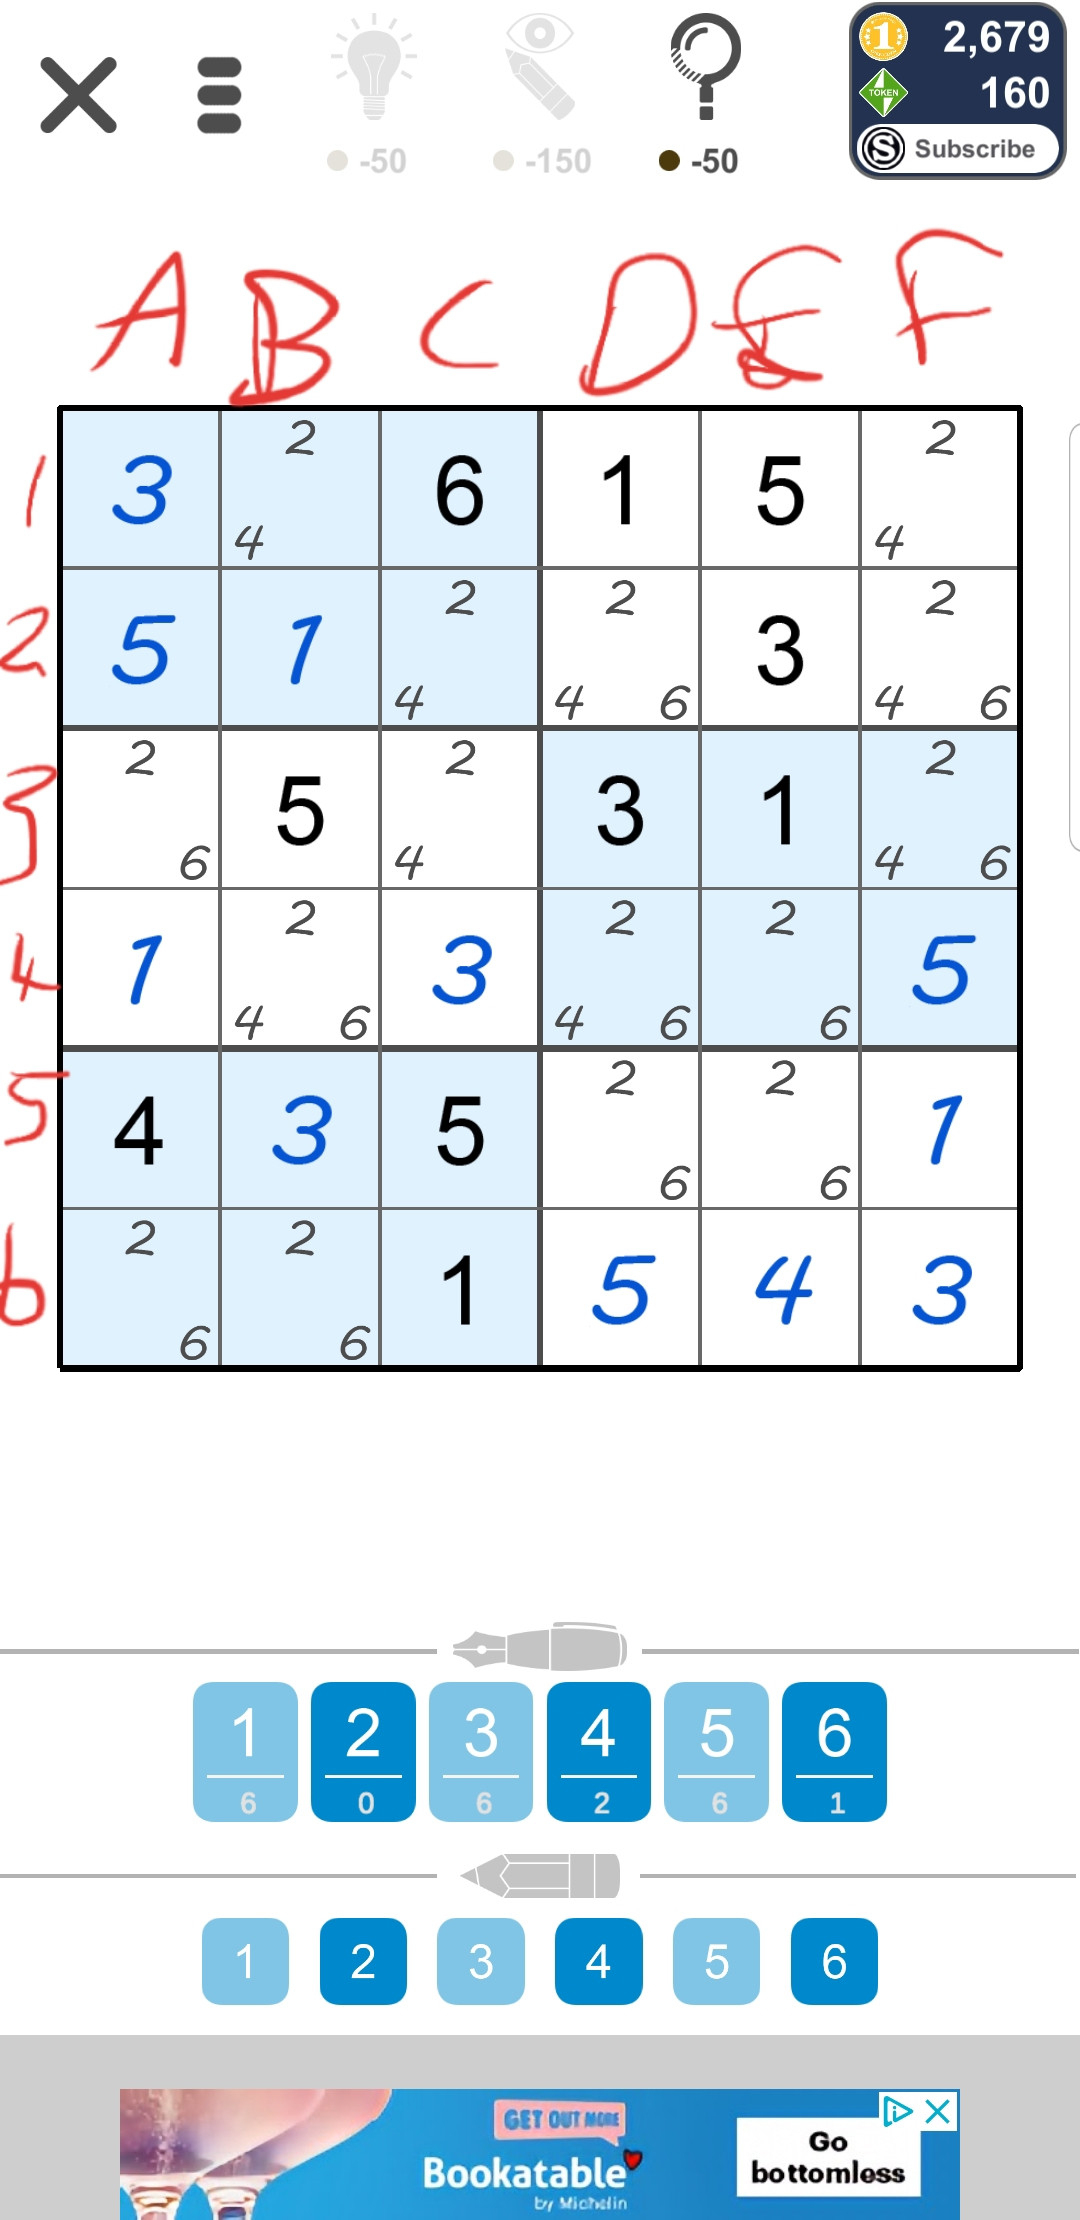 What Is The Best Way To Solve This 6x6 Sudoku